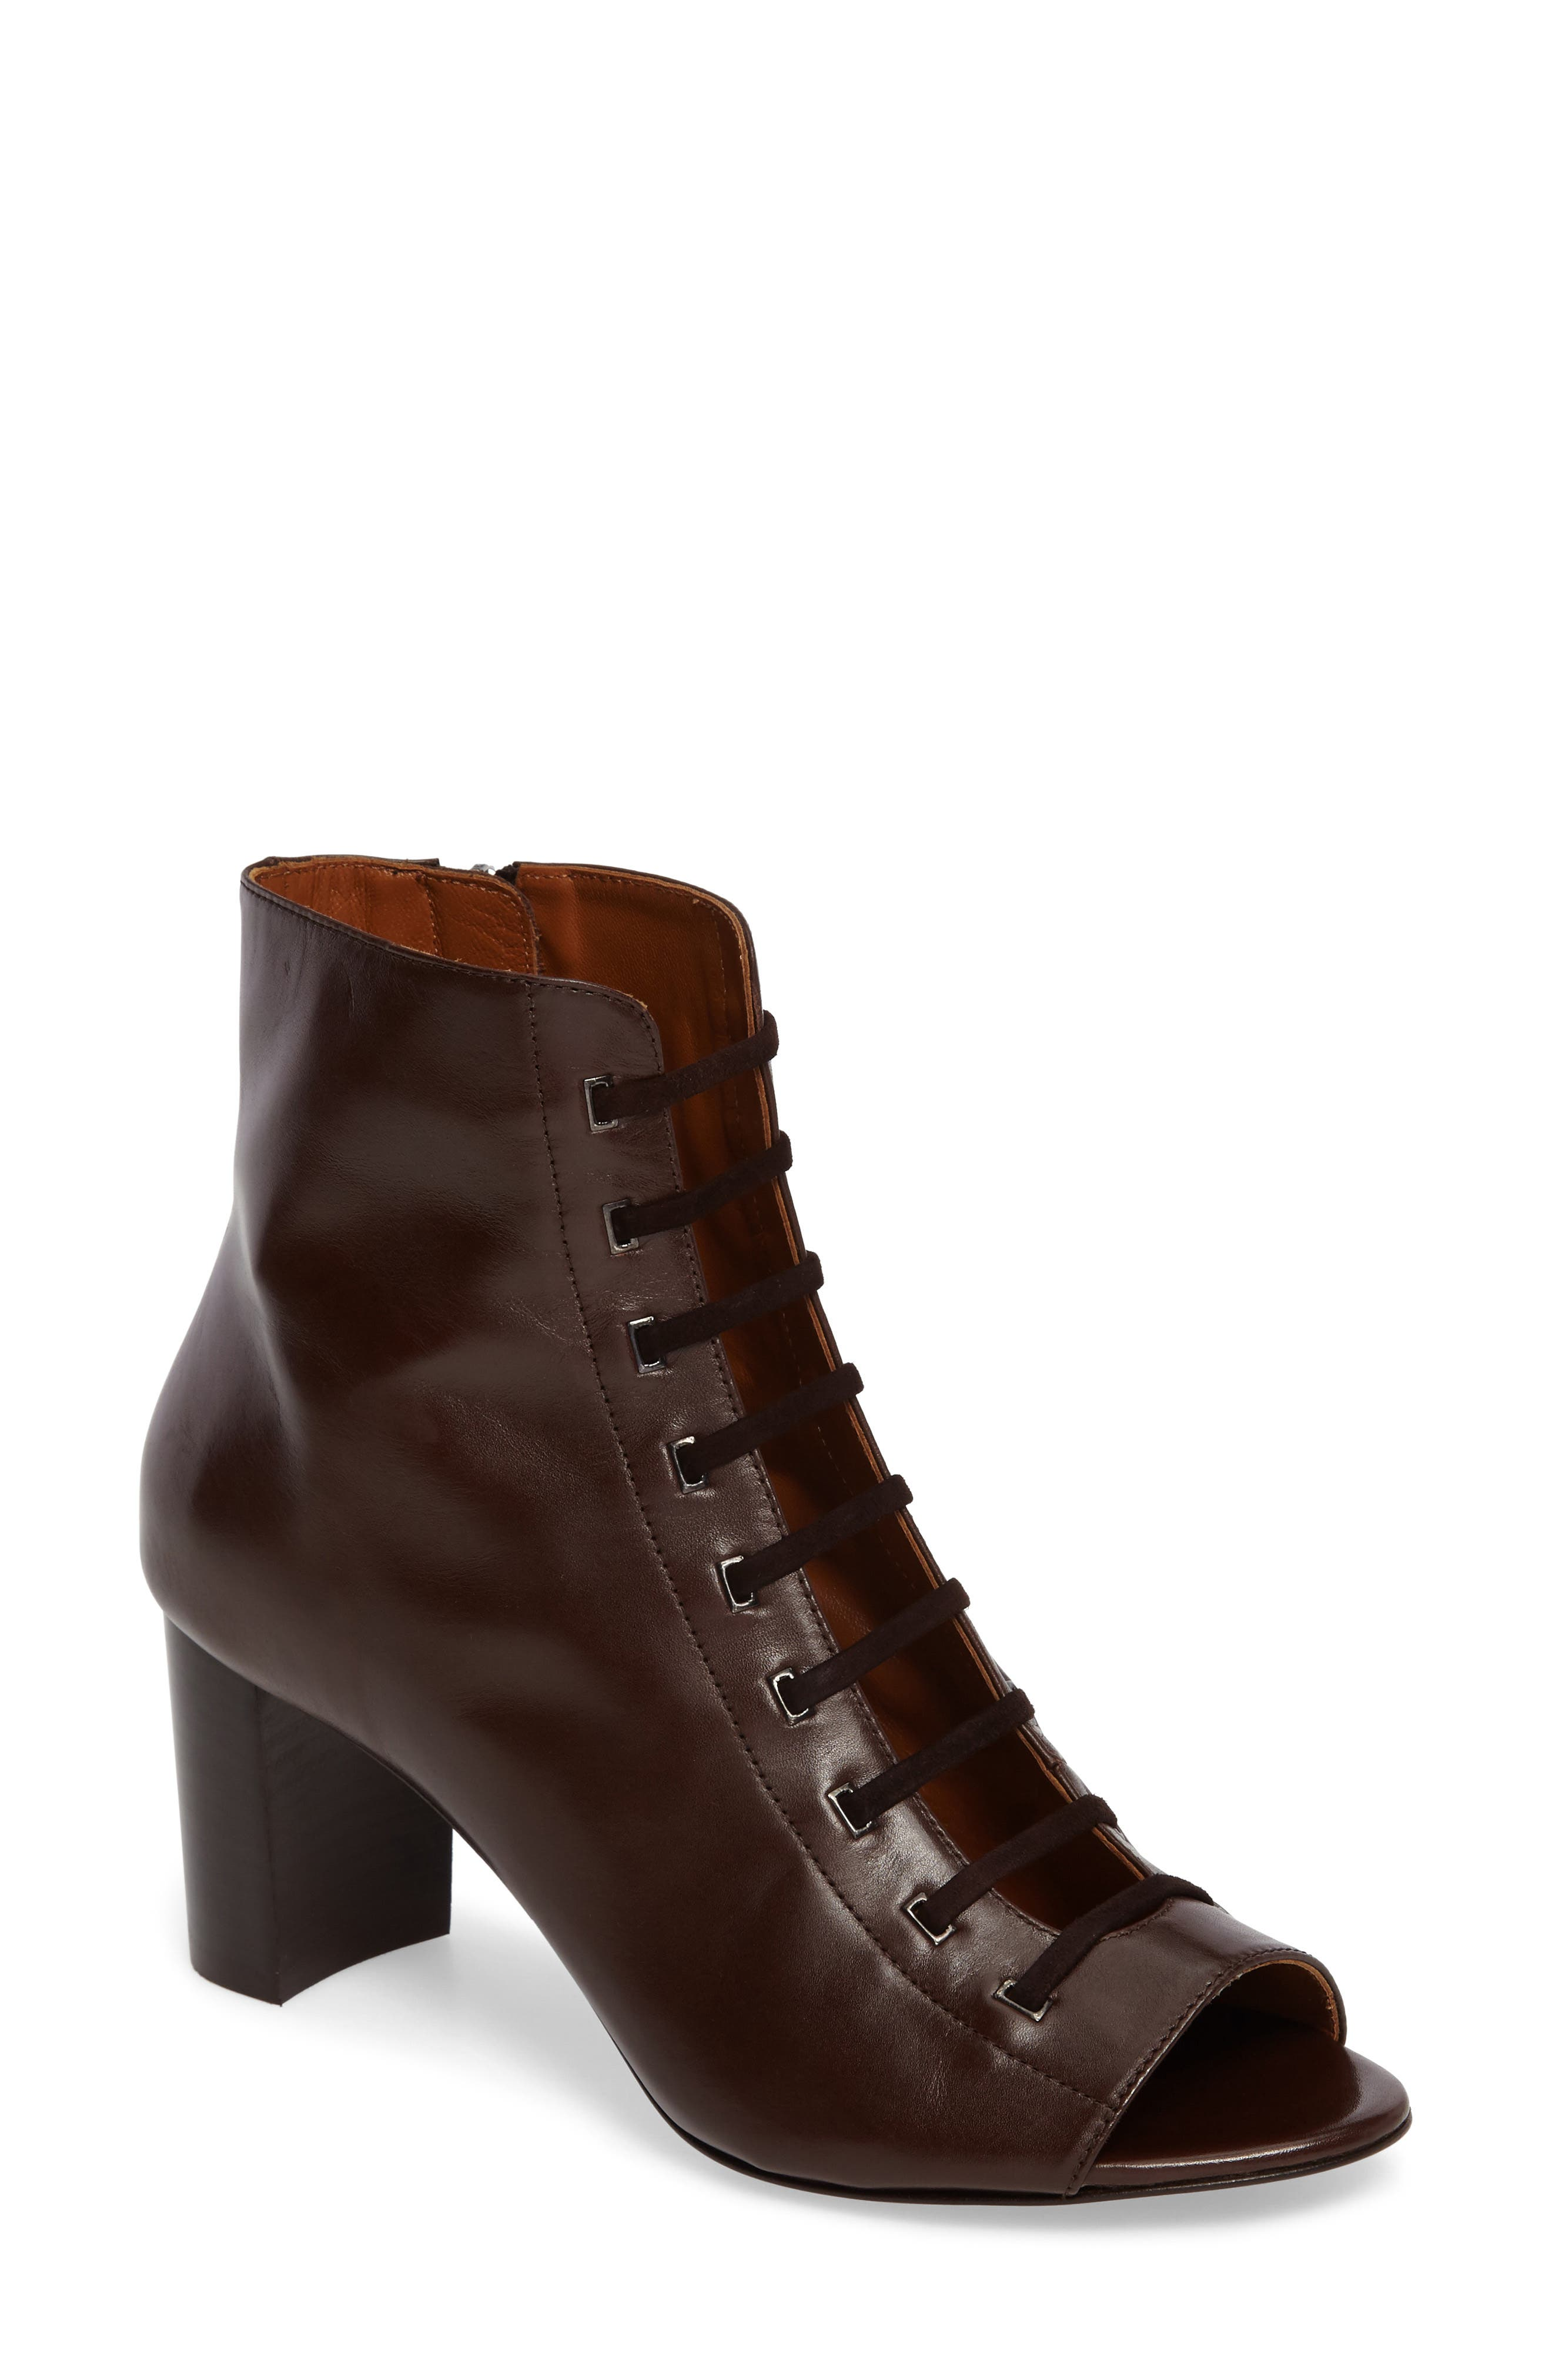 Main Image - Aquatalia Stefania Weatherproof Open Toe Bootie (Women)